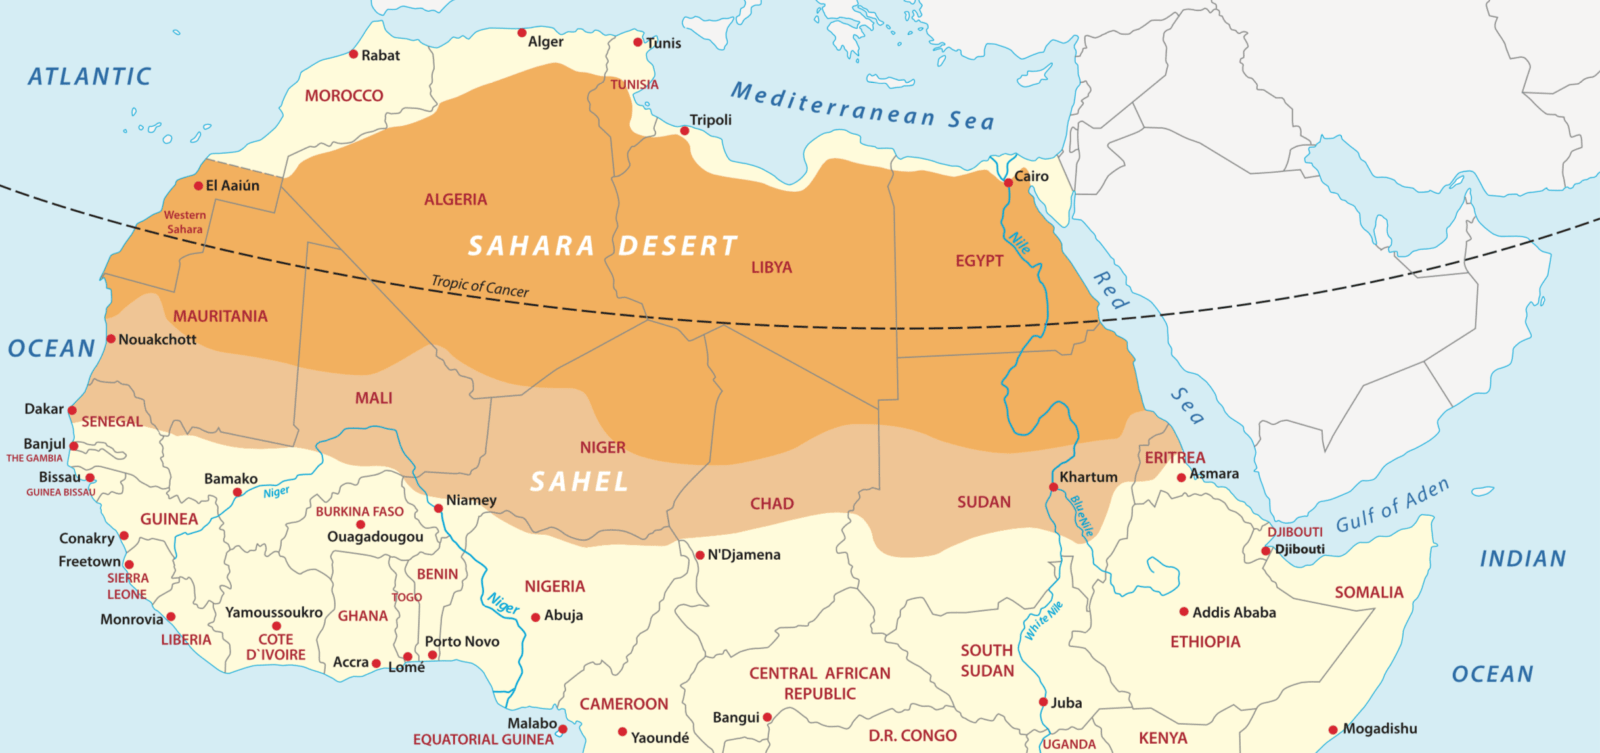 sahara desert map location Opportunities And Challenges In The Sahara Desert Internet Geography sahara desert map location